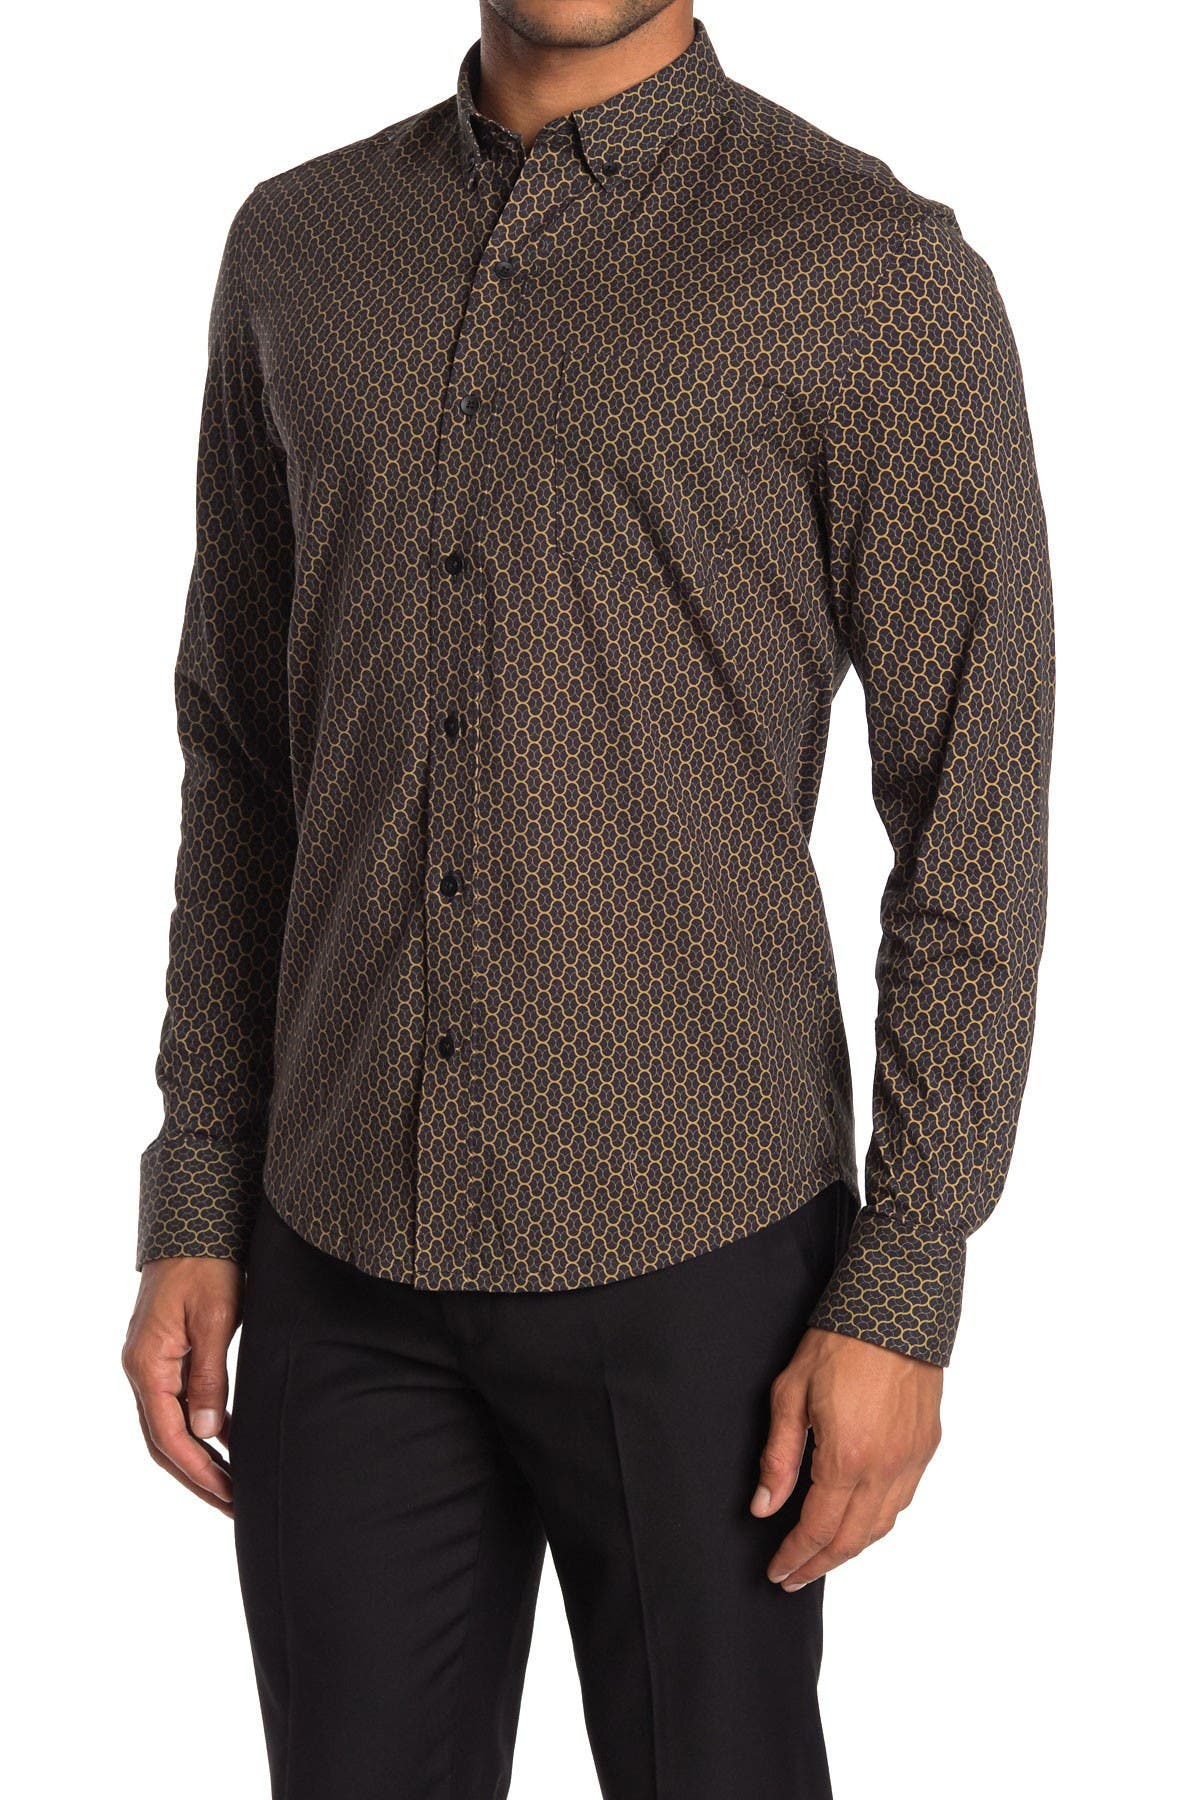 Image of WRK Interlaced Lines Print Reworked Shirt